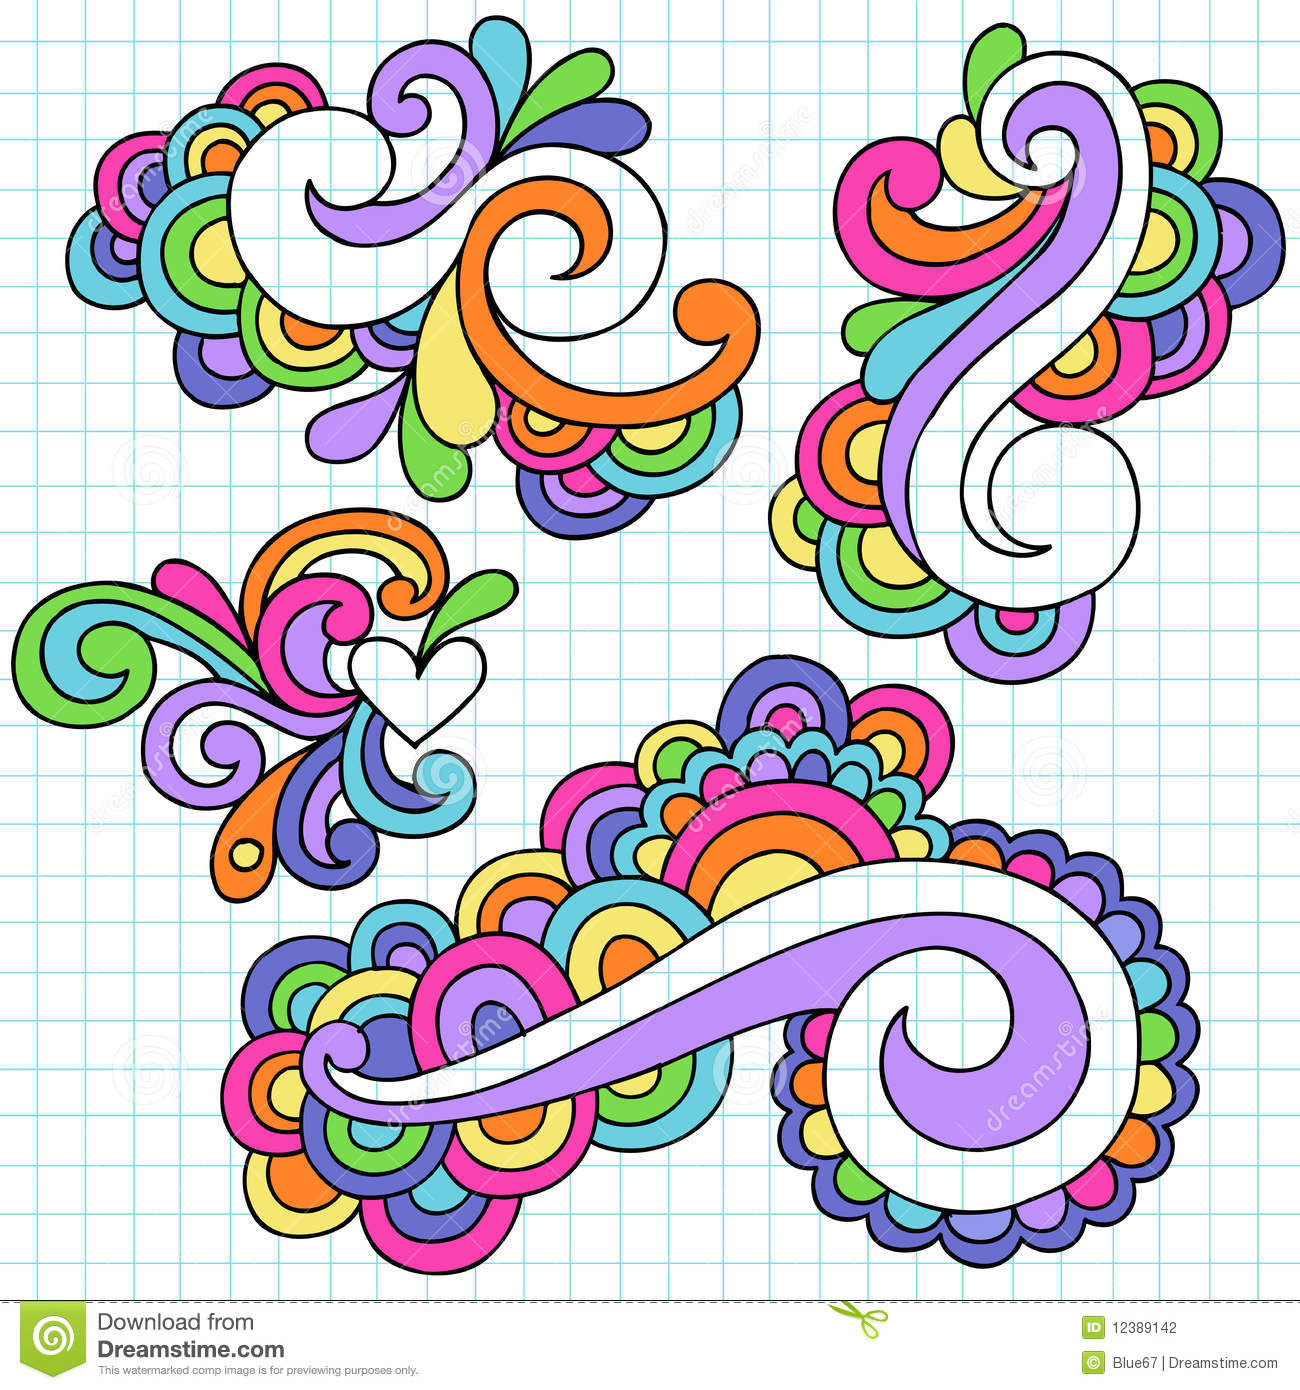 Groovy Notebook Doodle Design Elements Vector Stock Photography Image 12389142